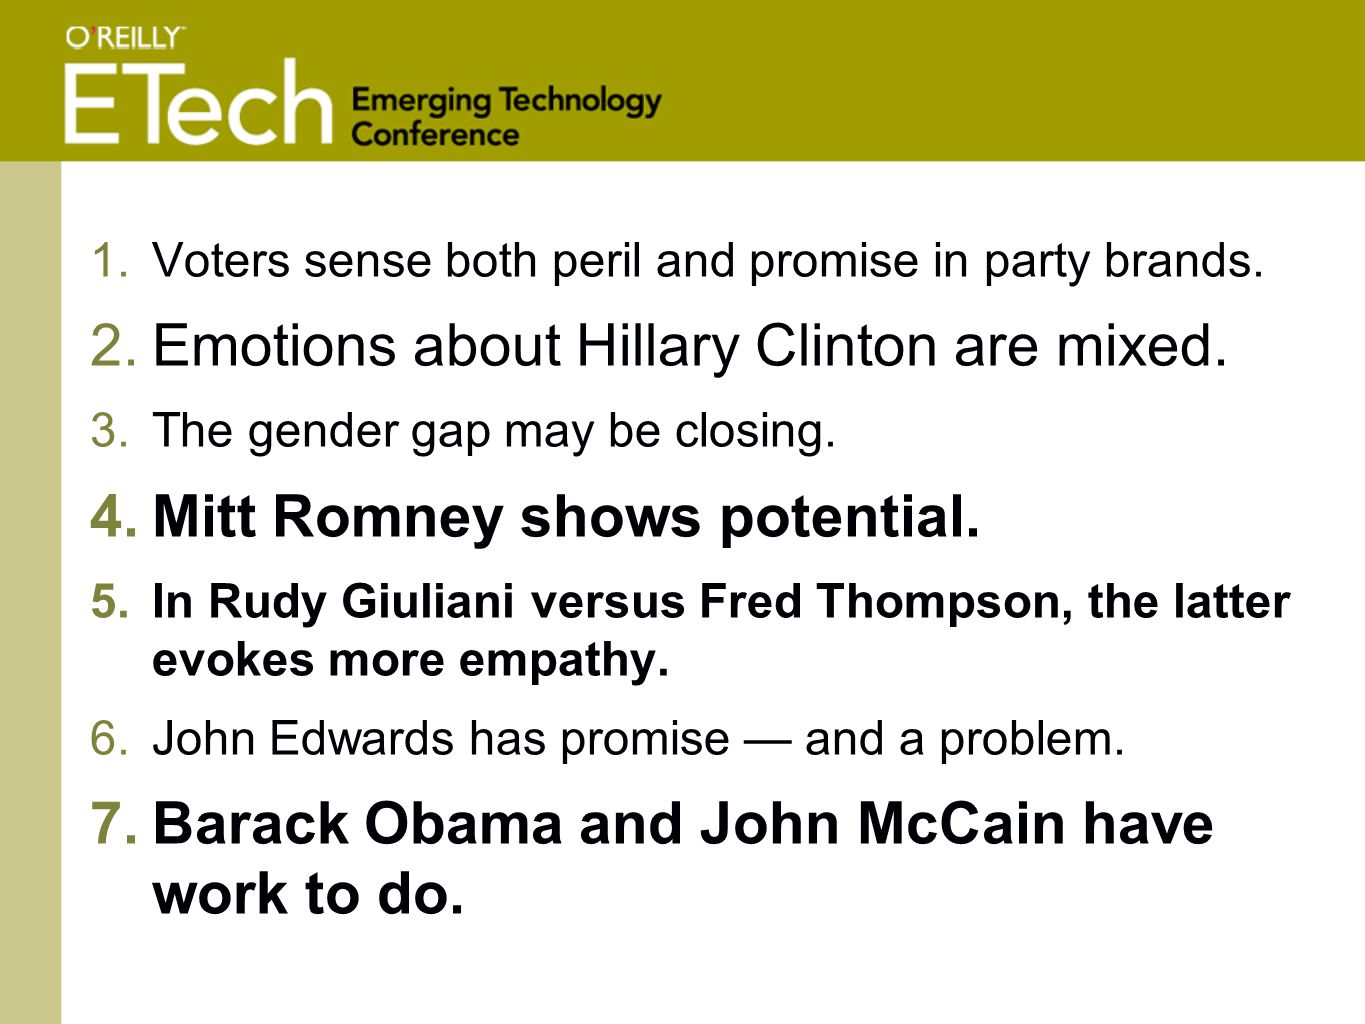 1.Voters sense both peril and promise in party brands.